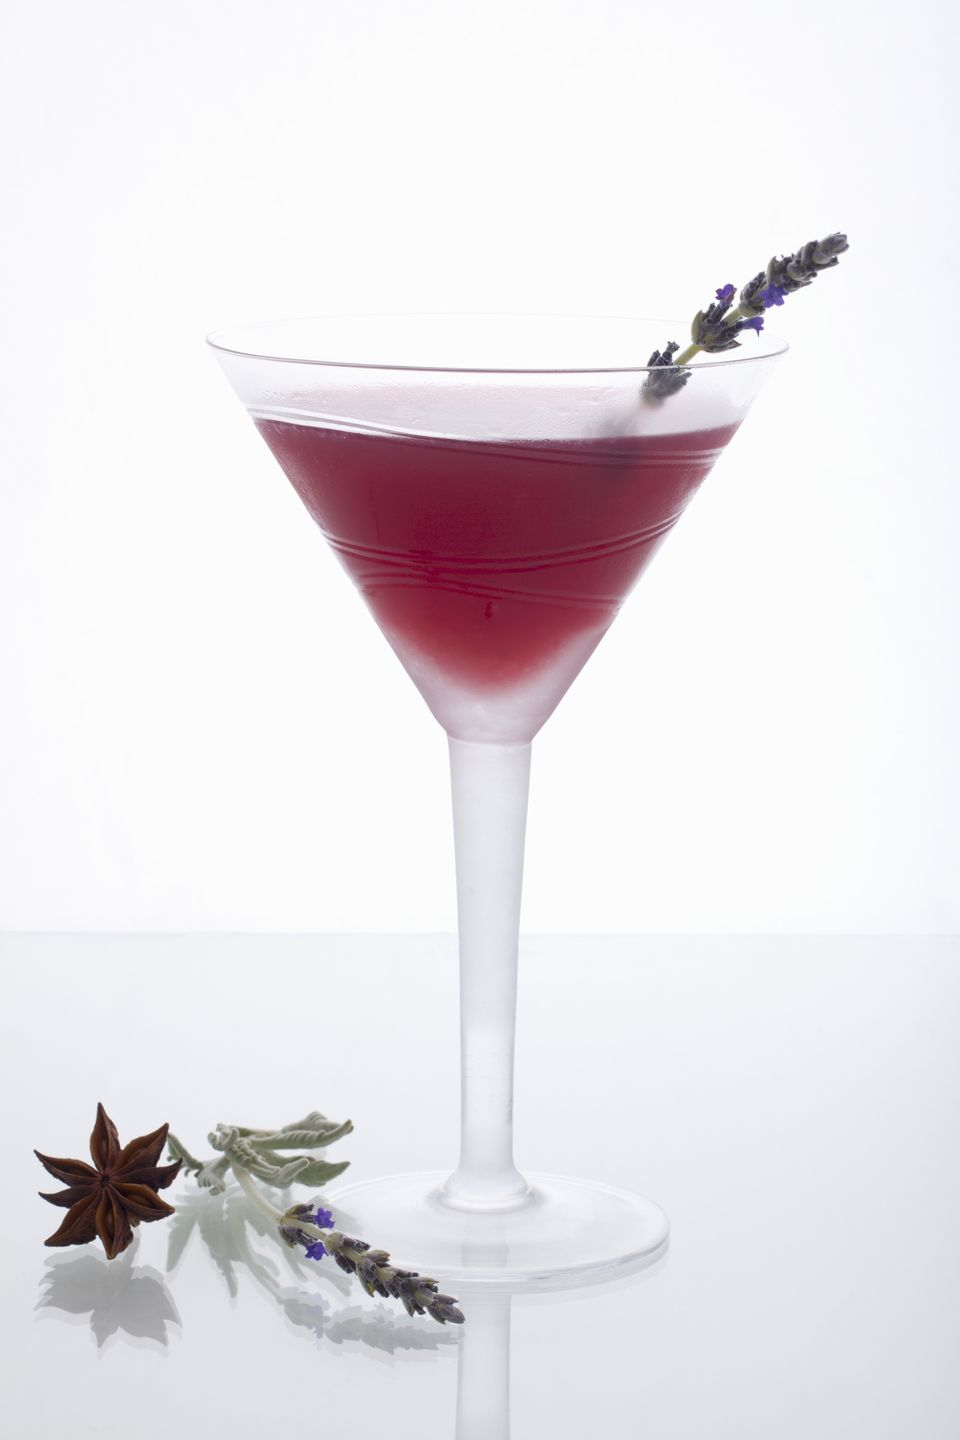 Orange Blossom Cocktail Garnished with Lavender Sprig